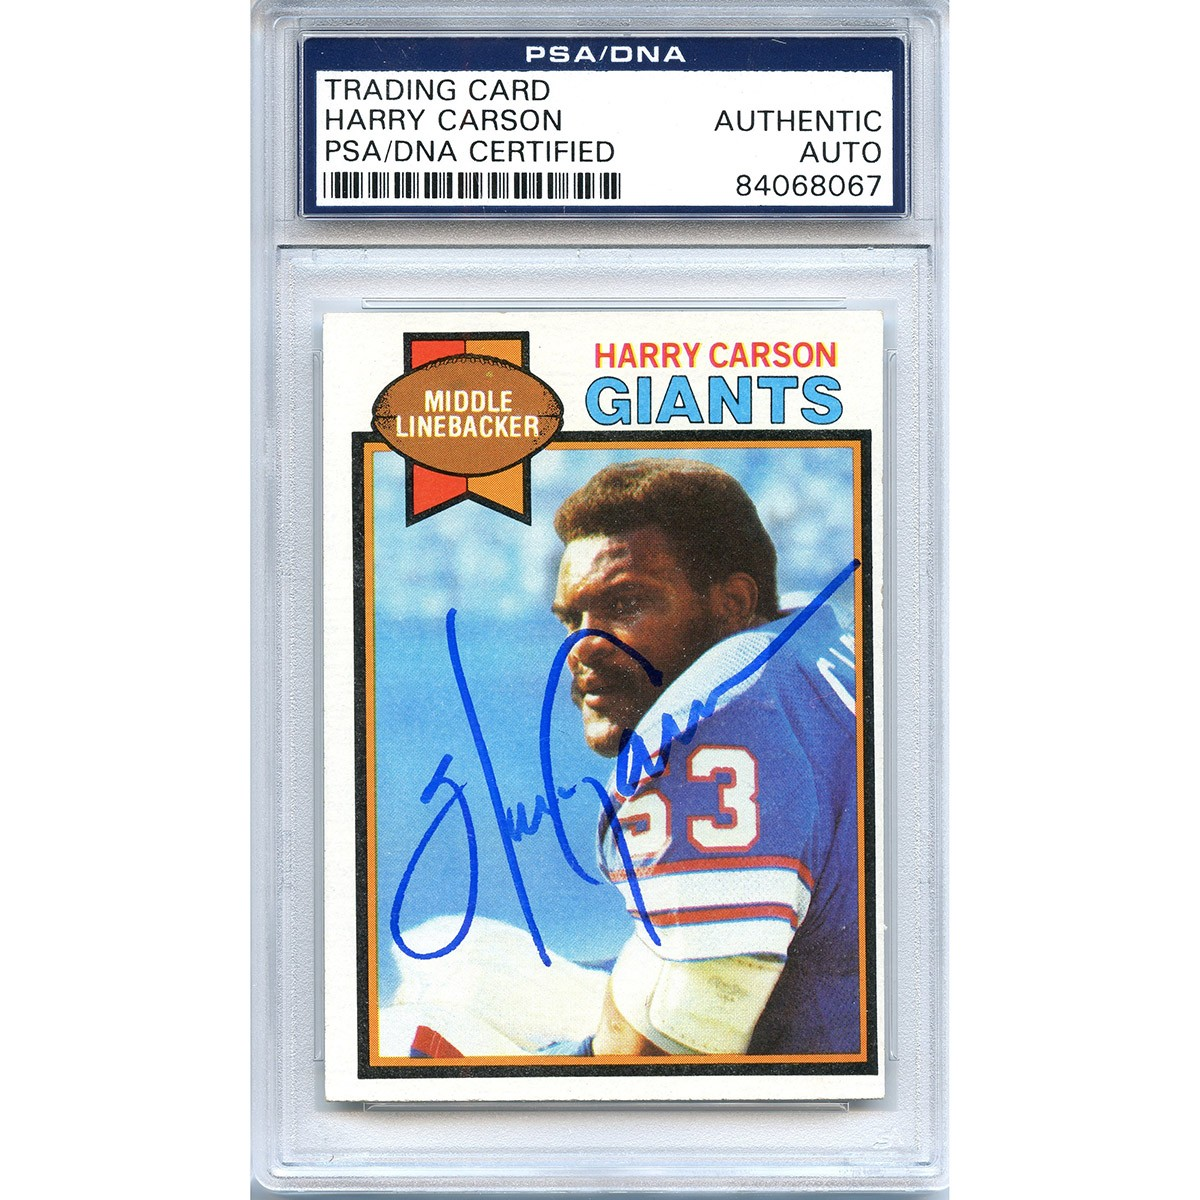 92775d883 Harry Carson Autographed Signed 1978 Topps Trading Card - PSA DNA Authentic